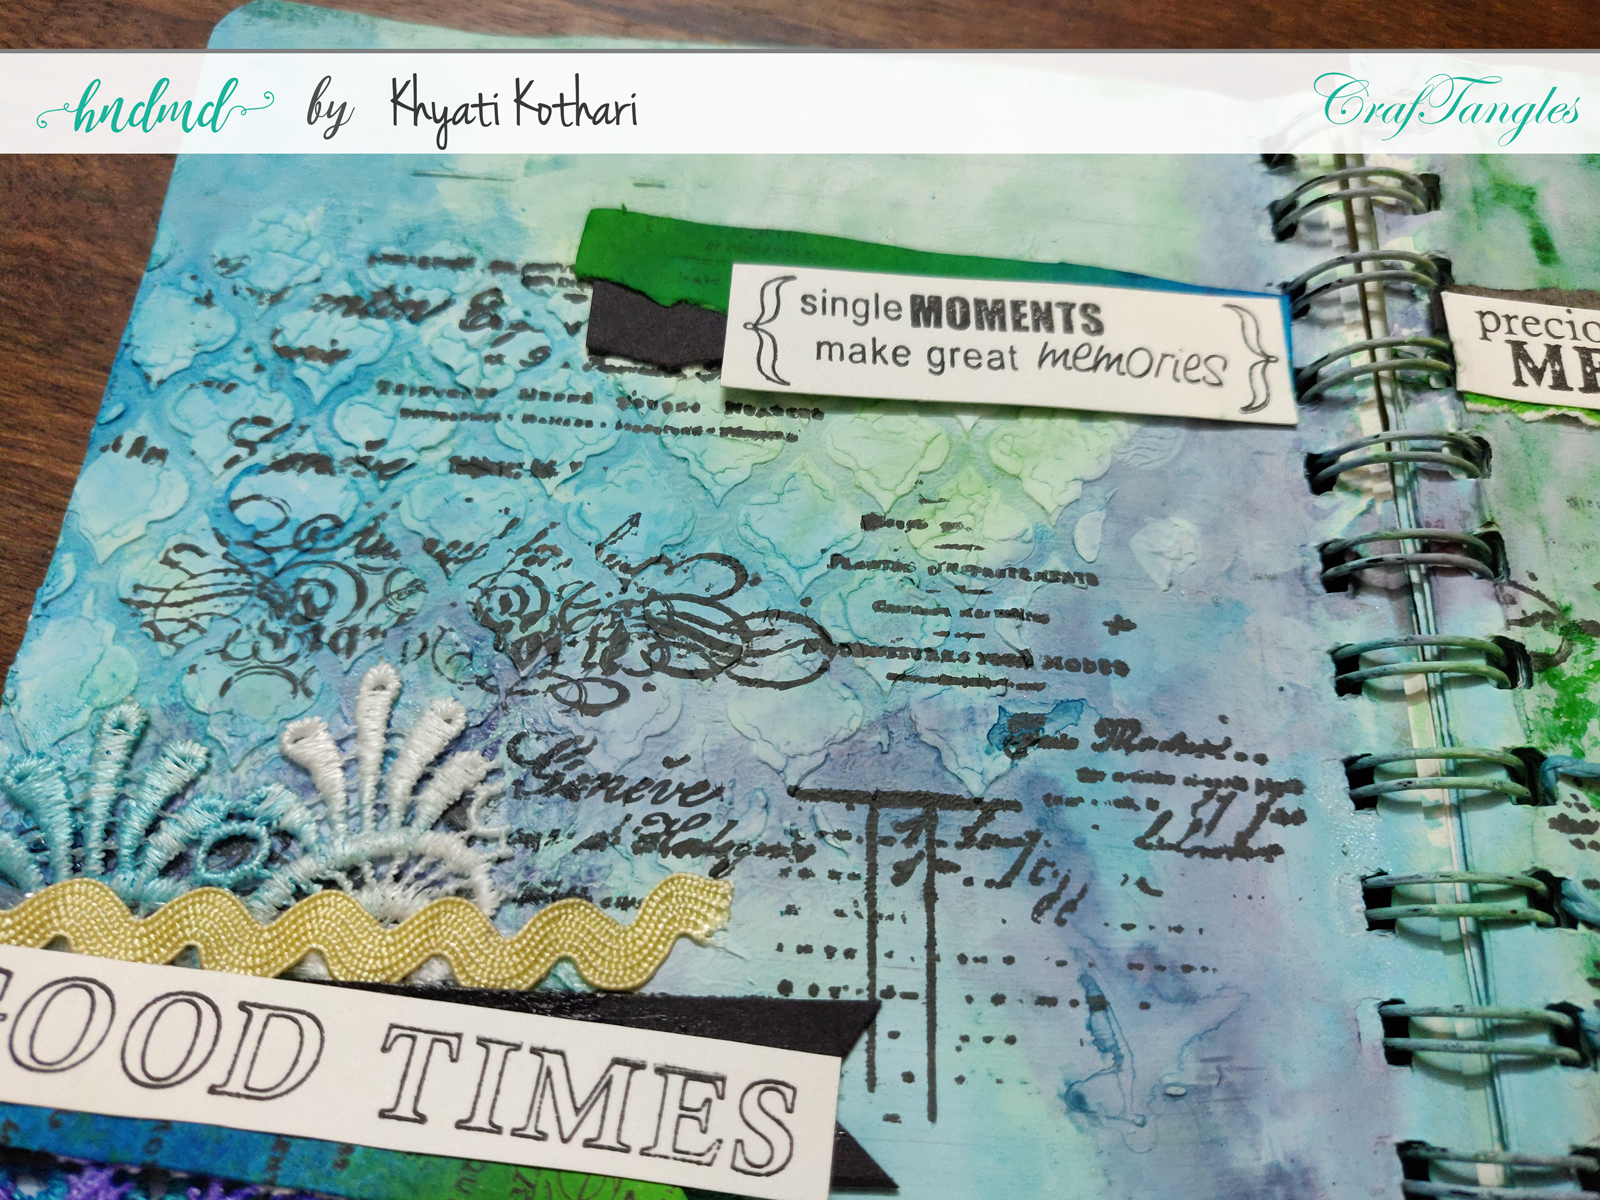 First attempt at Art Journal page using CrafTangles products 6